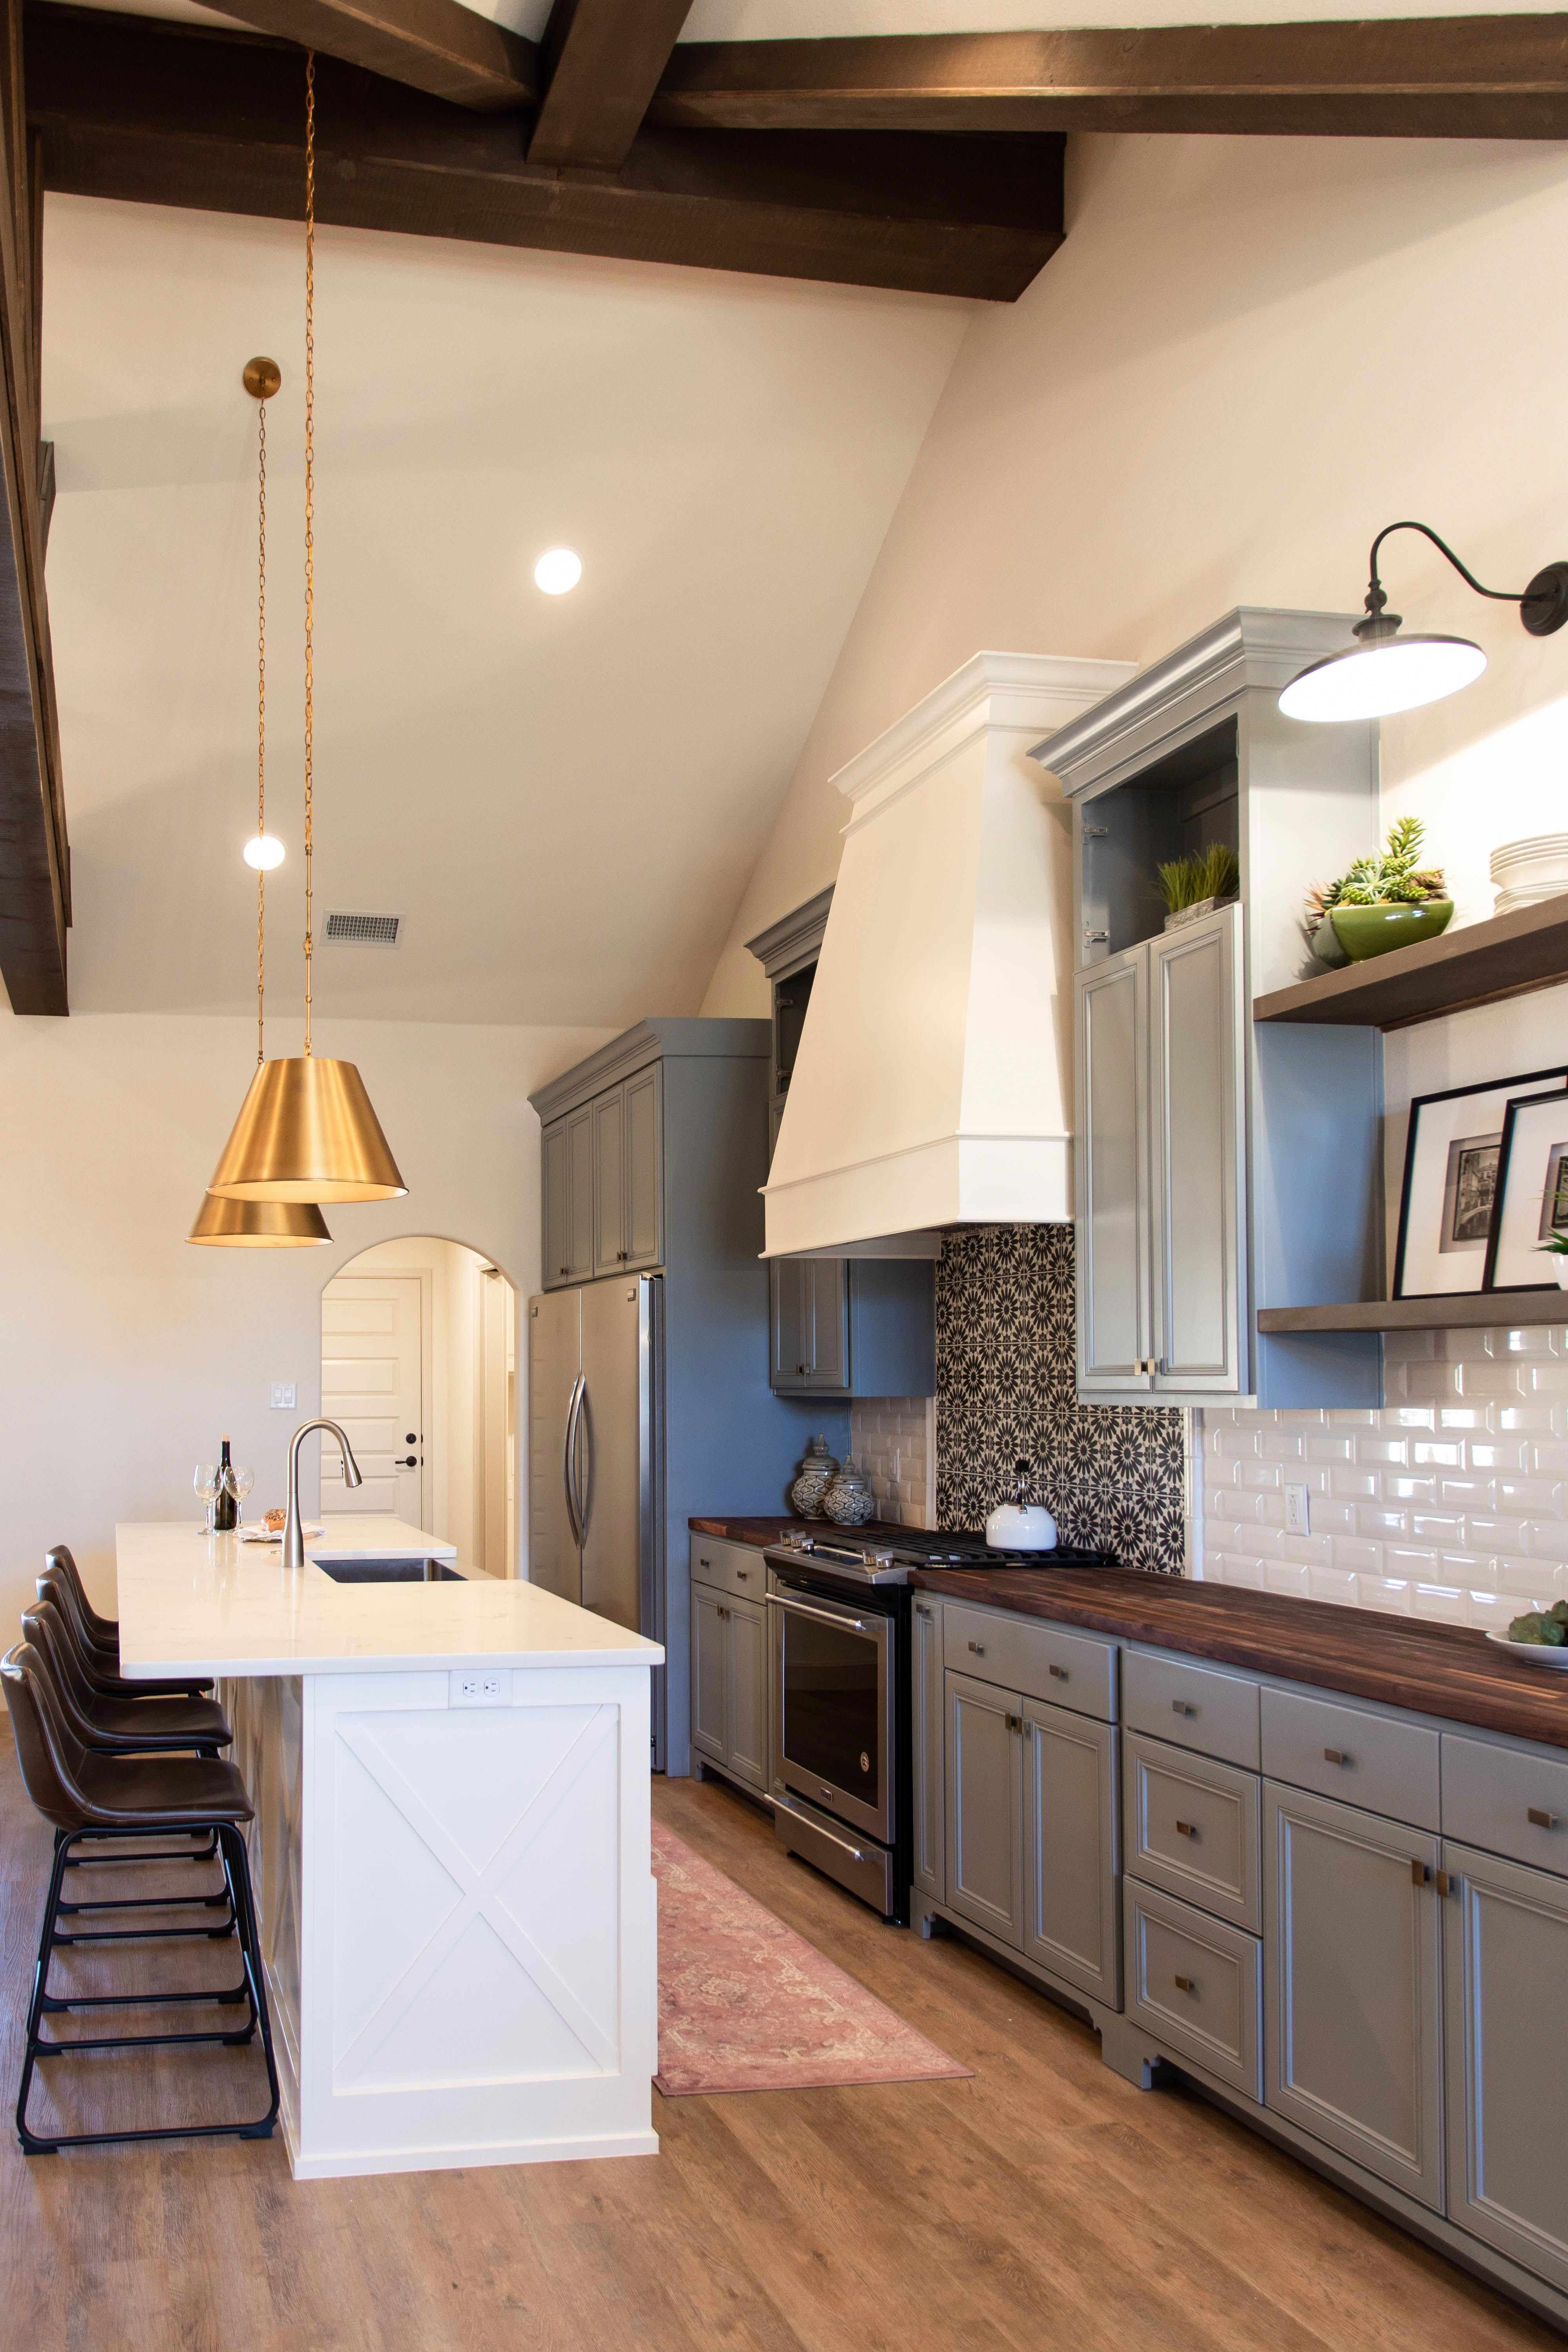 find other ideas kitchen countertops remodeling on a budget small kitchen remodeling with on kitchen ideas on a budget id=55243